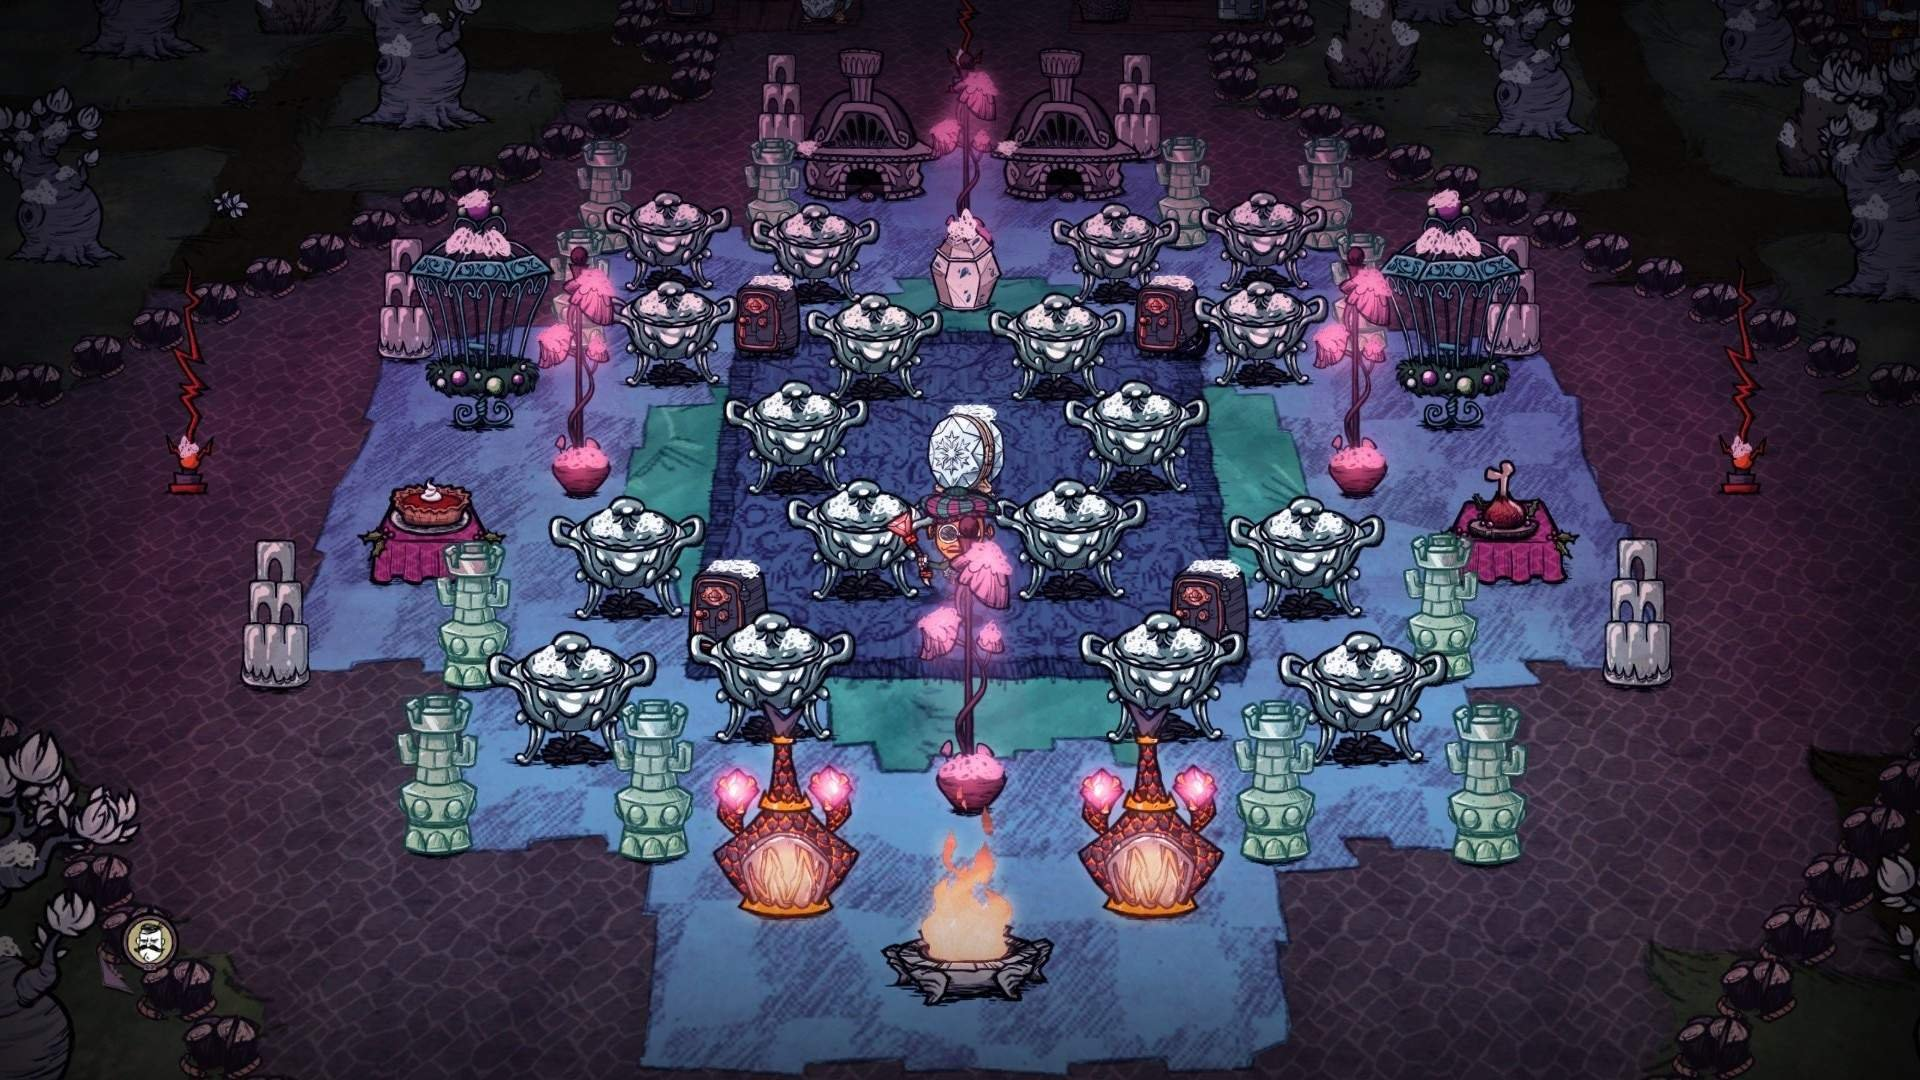 Don'T Starve Together How To Use Halloween Decorations 2020 Don't Starve Together   Lesser Known Tip Collection (for